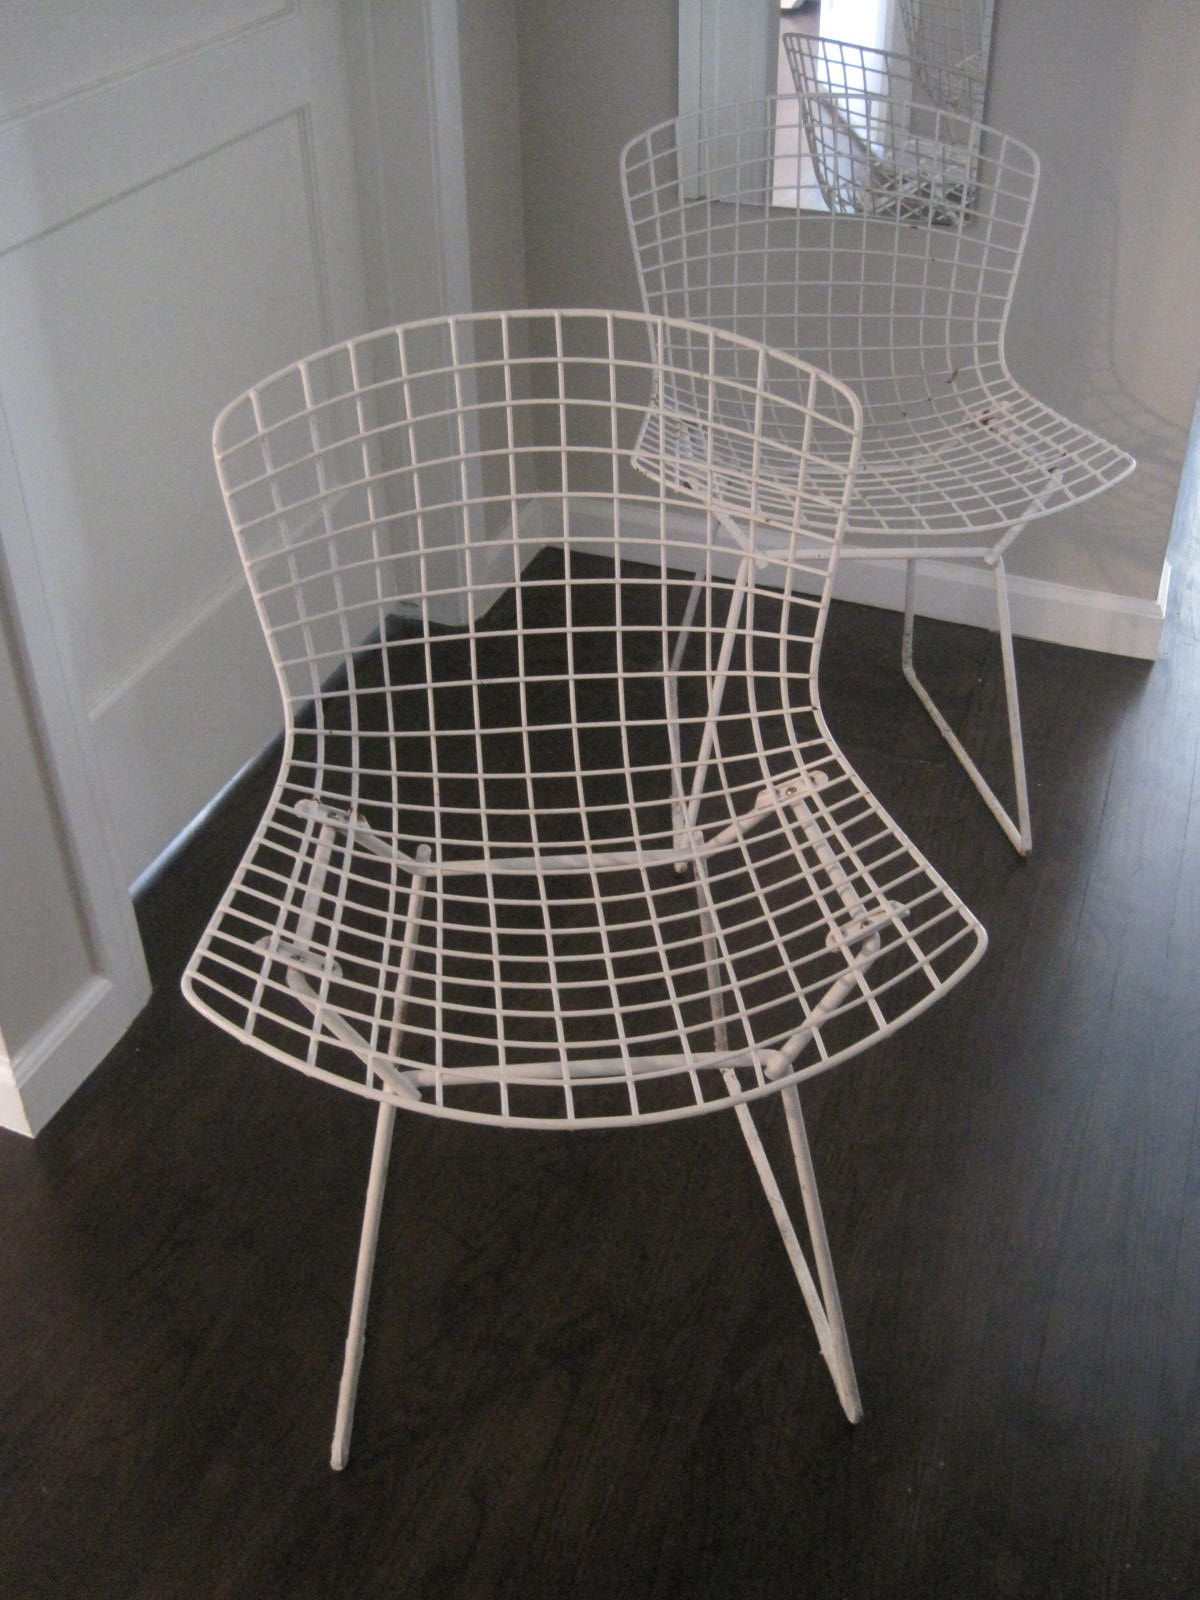 Rhan vintage mid century modern blog monday finds bertoia side chairs and - Bertoia coffee table ...